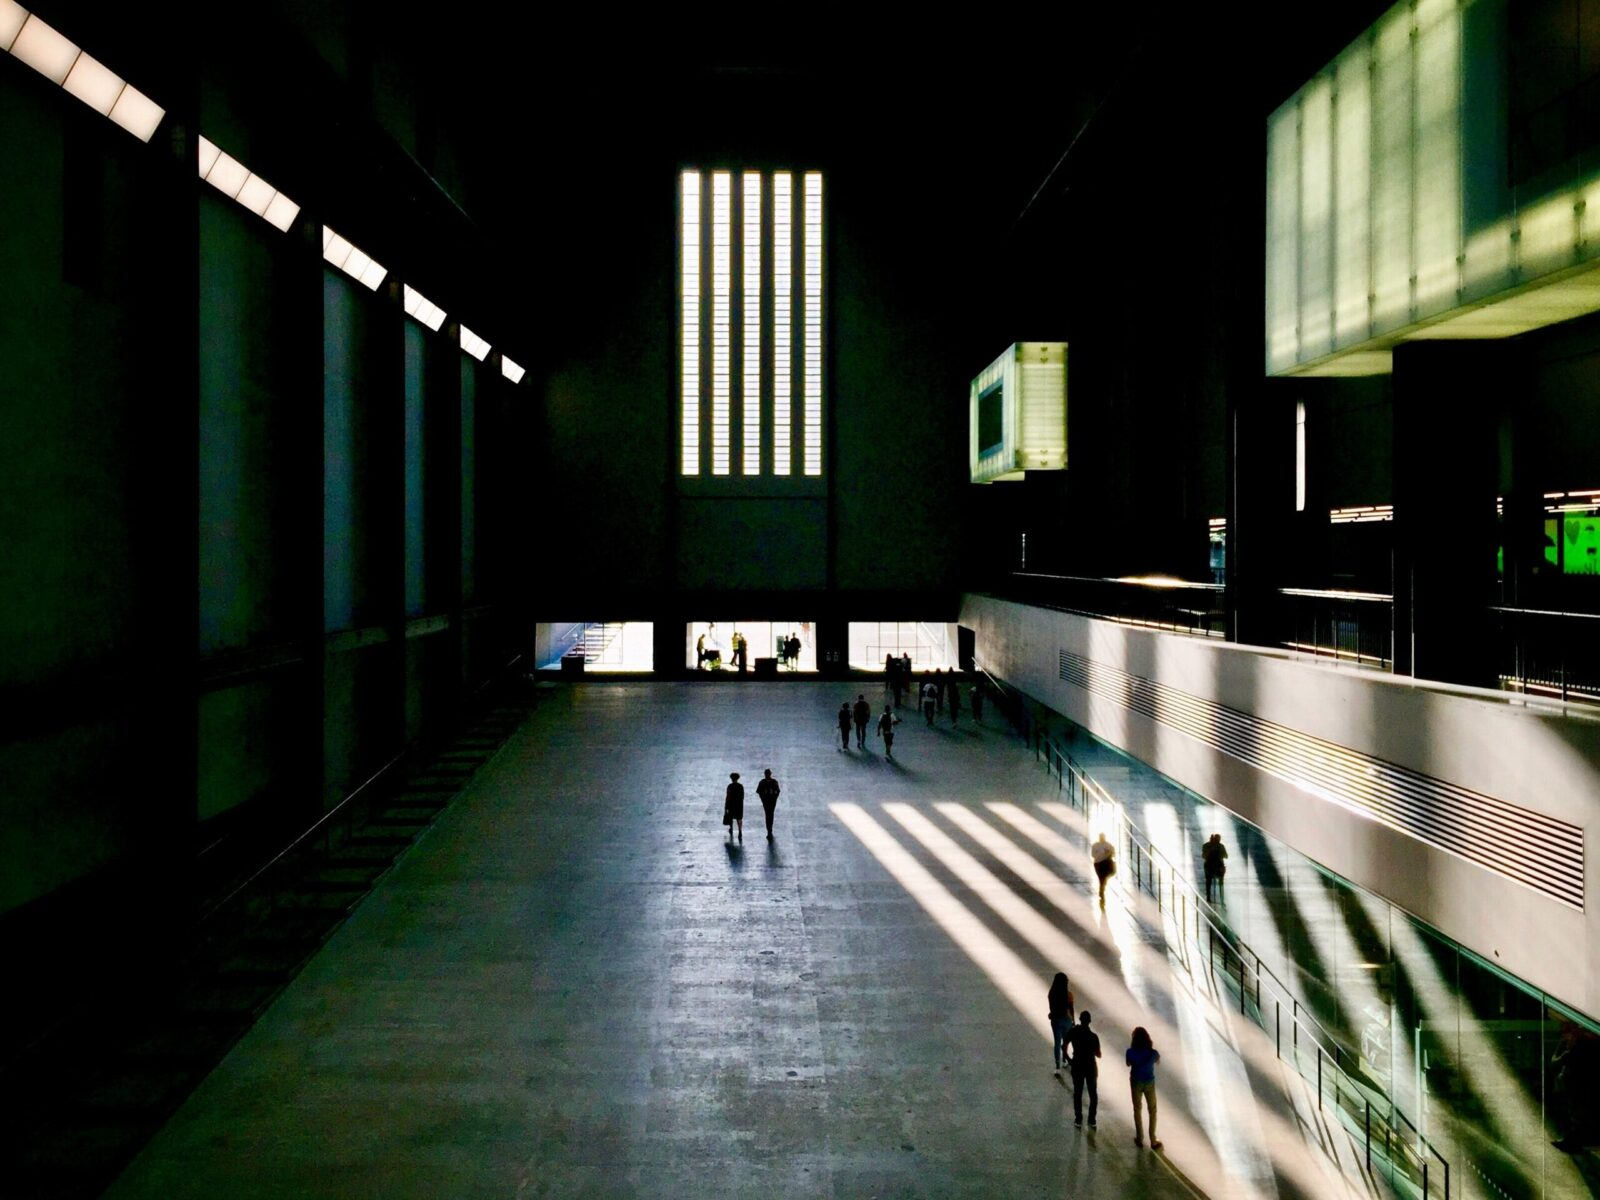 British Museum suffered most from lockdown among the major museums in the United Kingdom